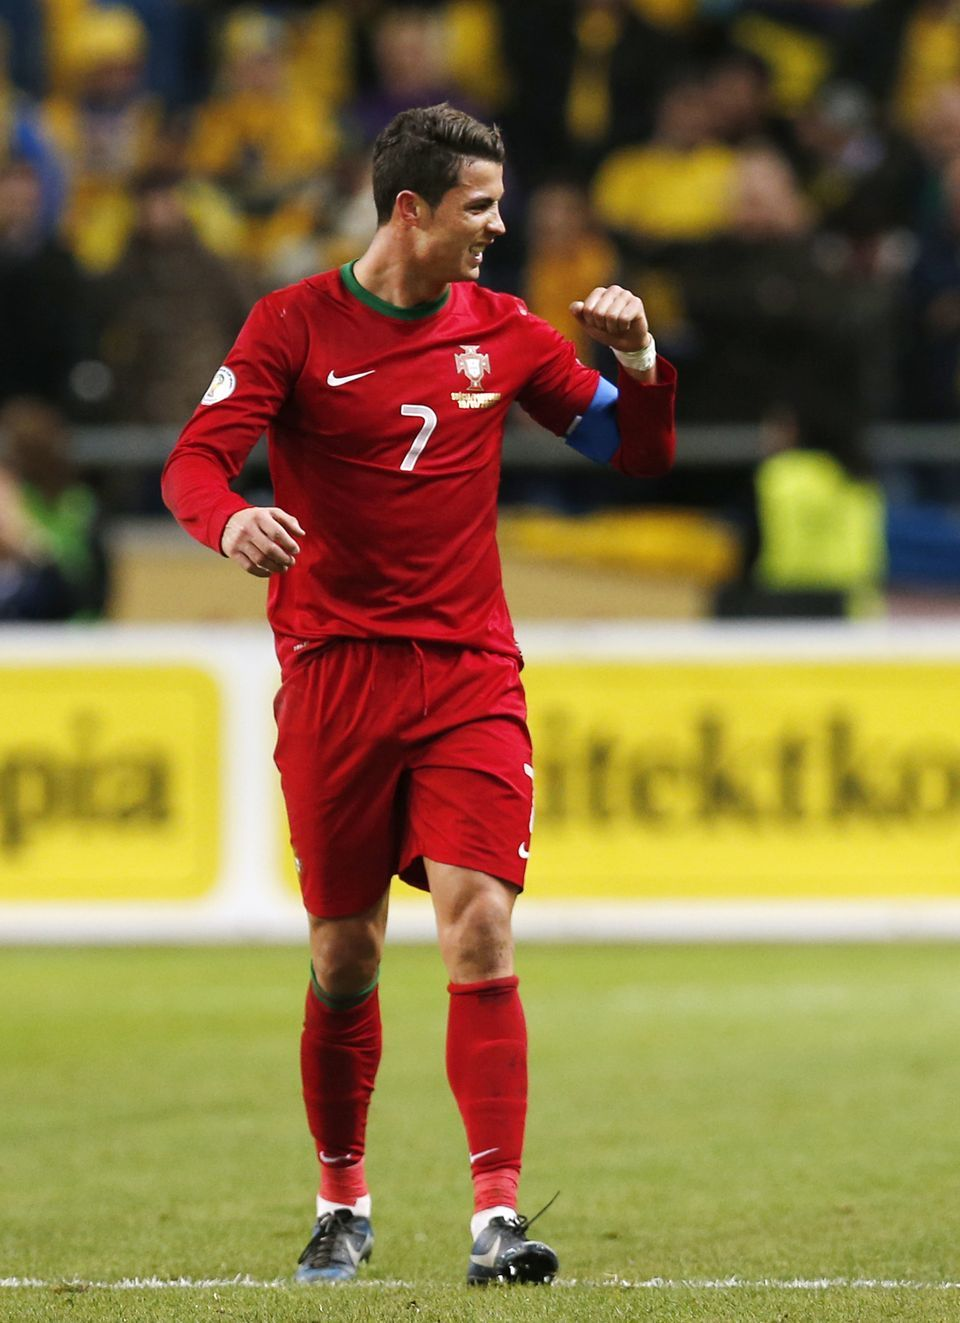 Cristiano Ronaldo of Portugal in his new Nike Mercurial